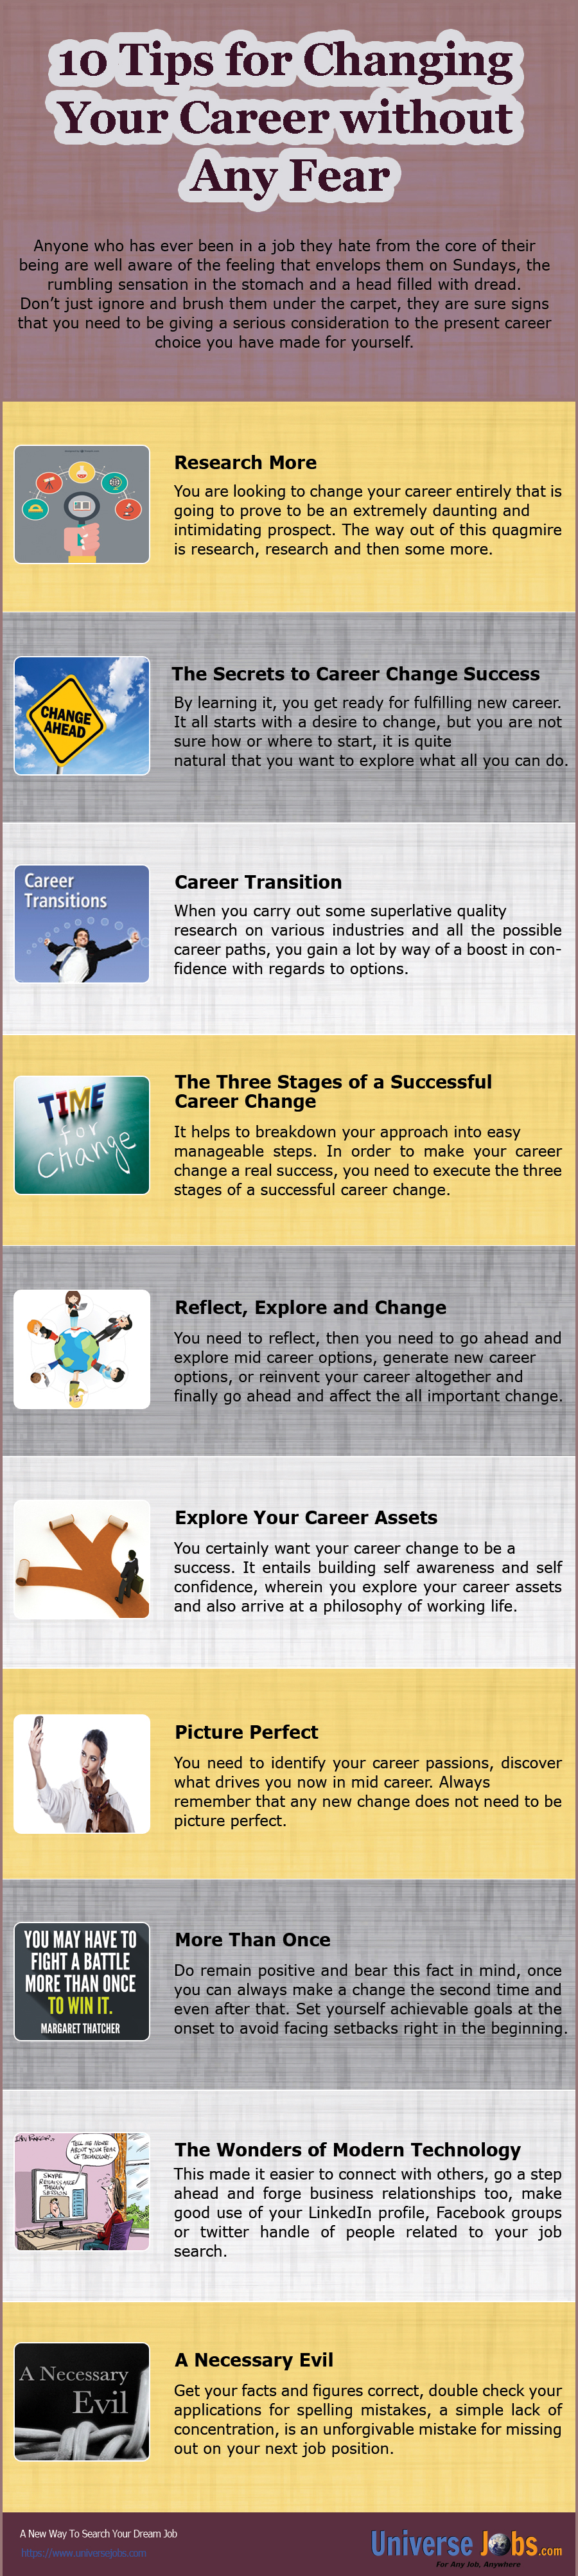 Lovely 10 Tips For Changing Your Career Without Any Fear (Info Graphics)